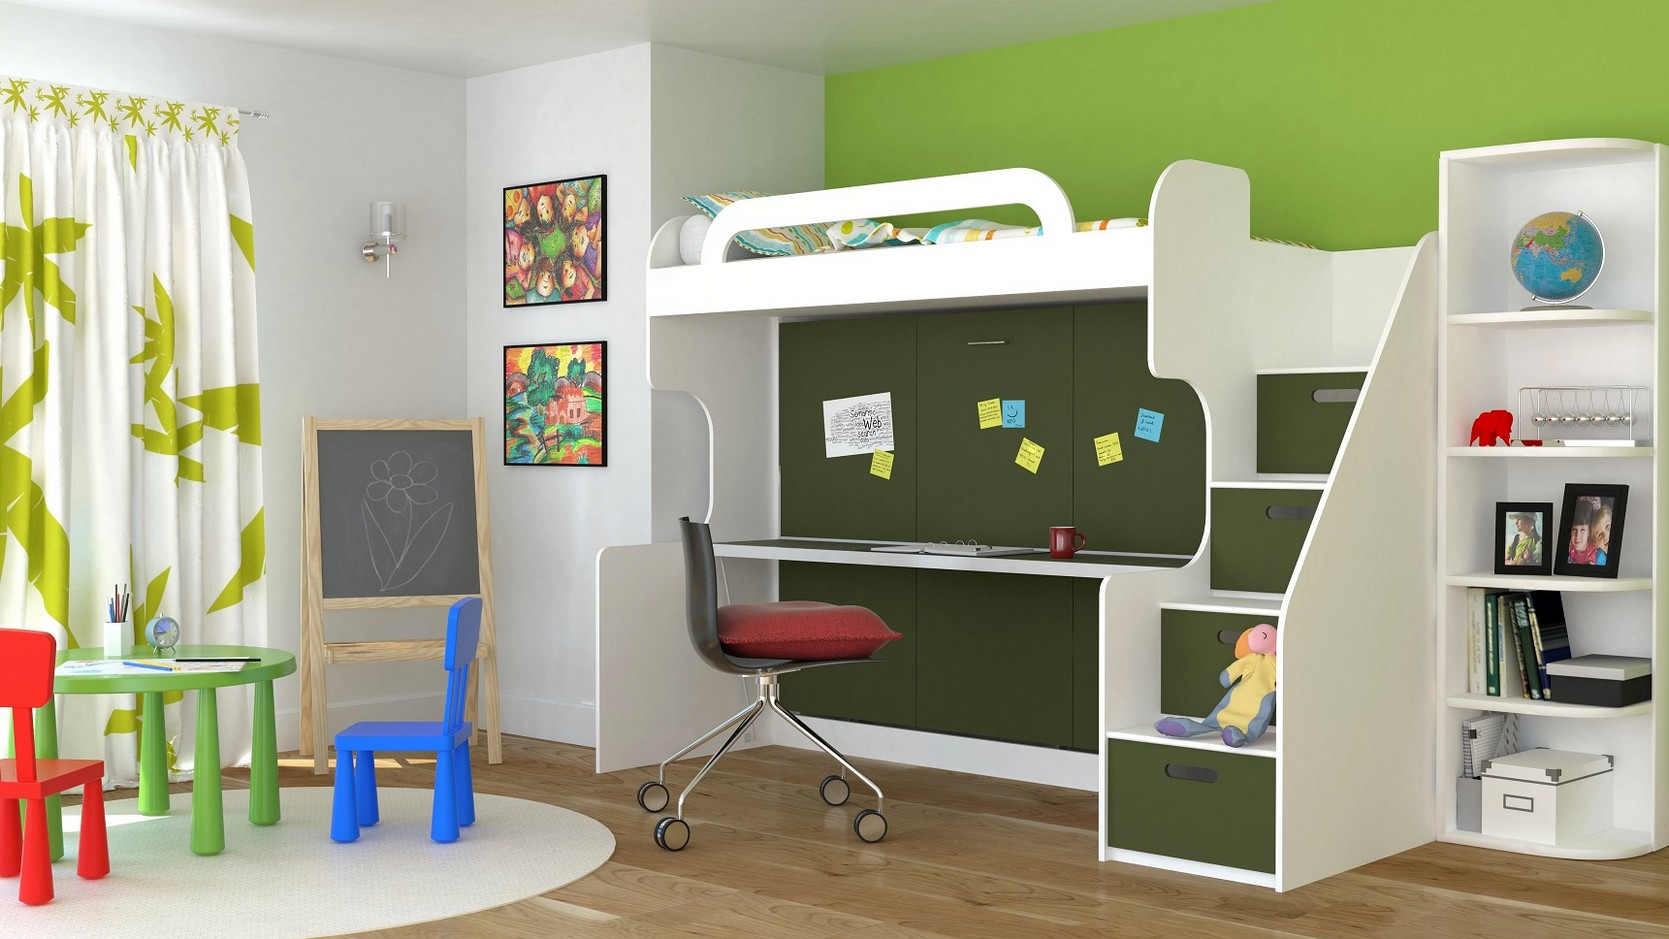 Cheap Kids Beds Online Bunk Beds Useful Safety Tips To Know Liveblog Spot